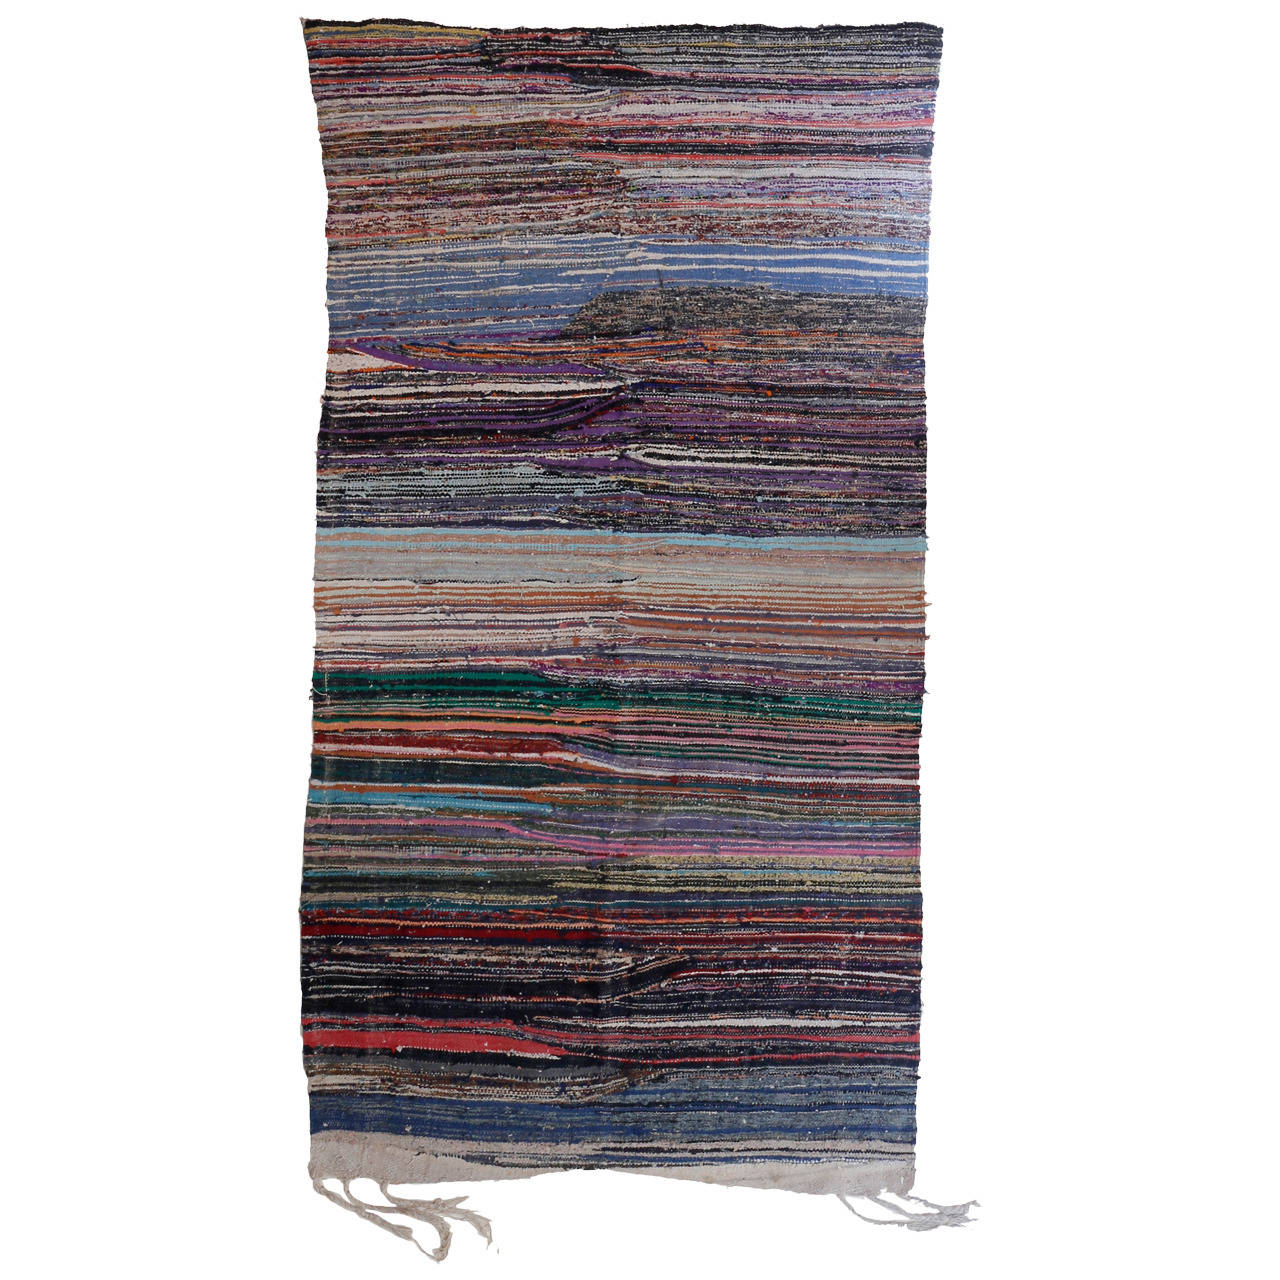 Moroccan Boucherouite Rug For Sale At 1stdibs: Boucherouite Berber Flat-Weave For Sale At 1stdibs